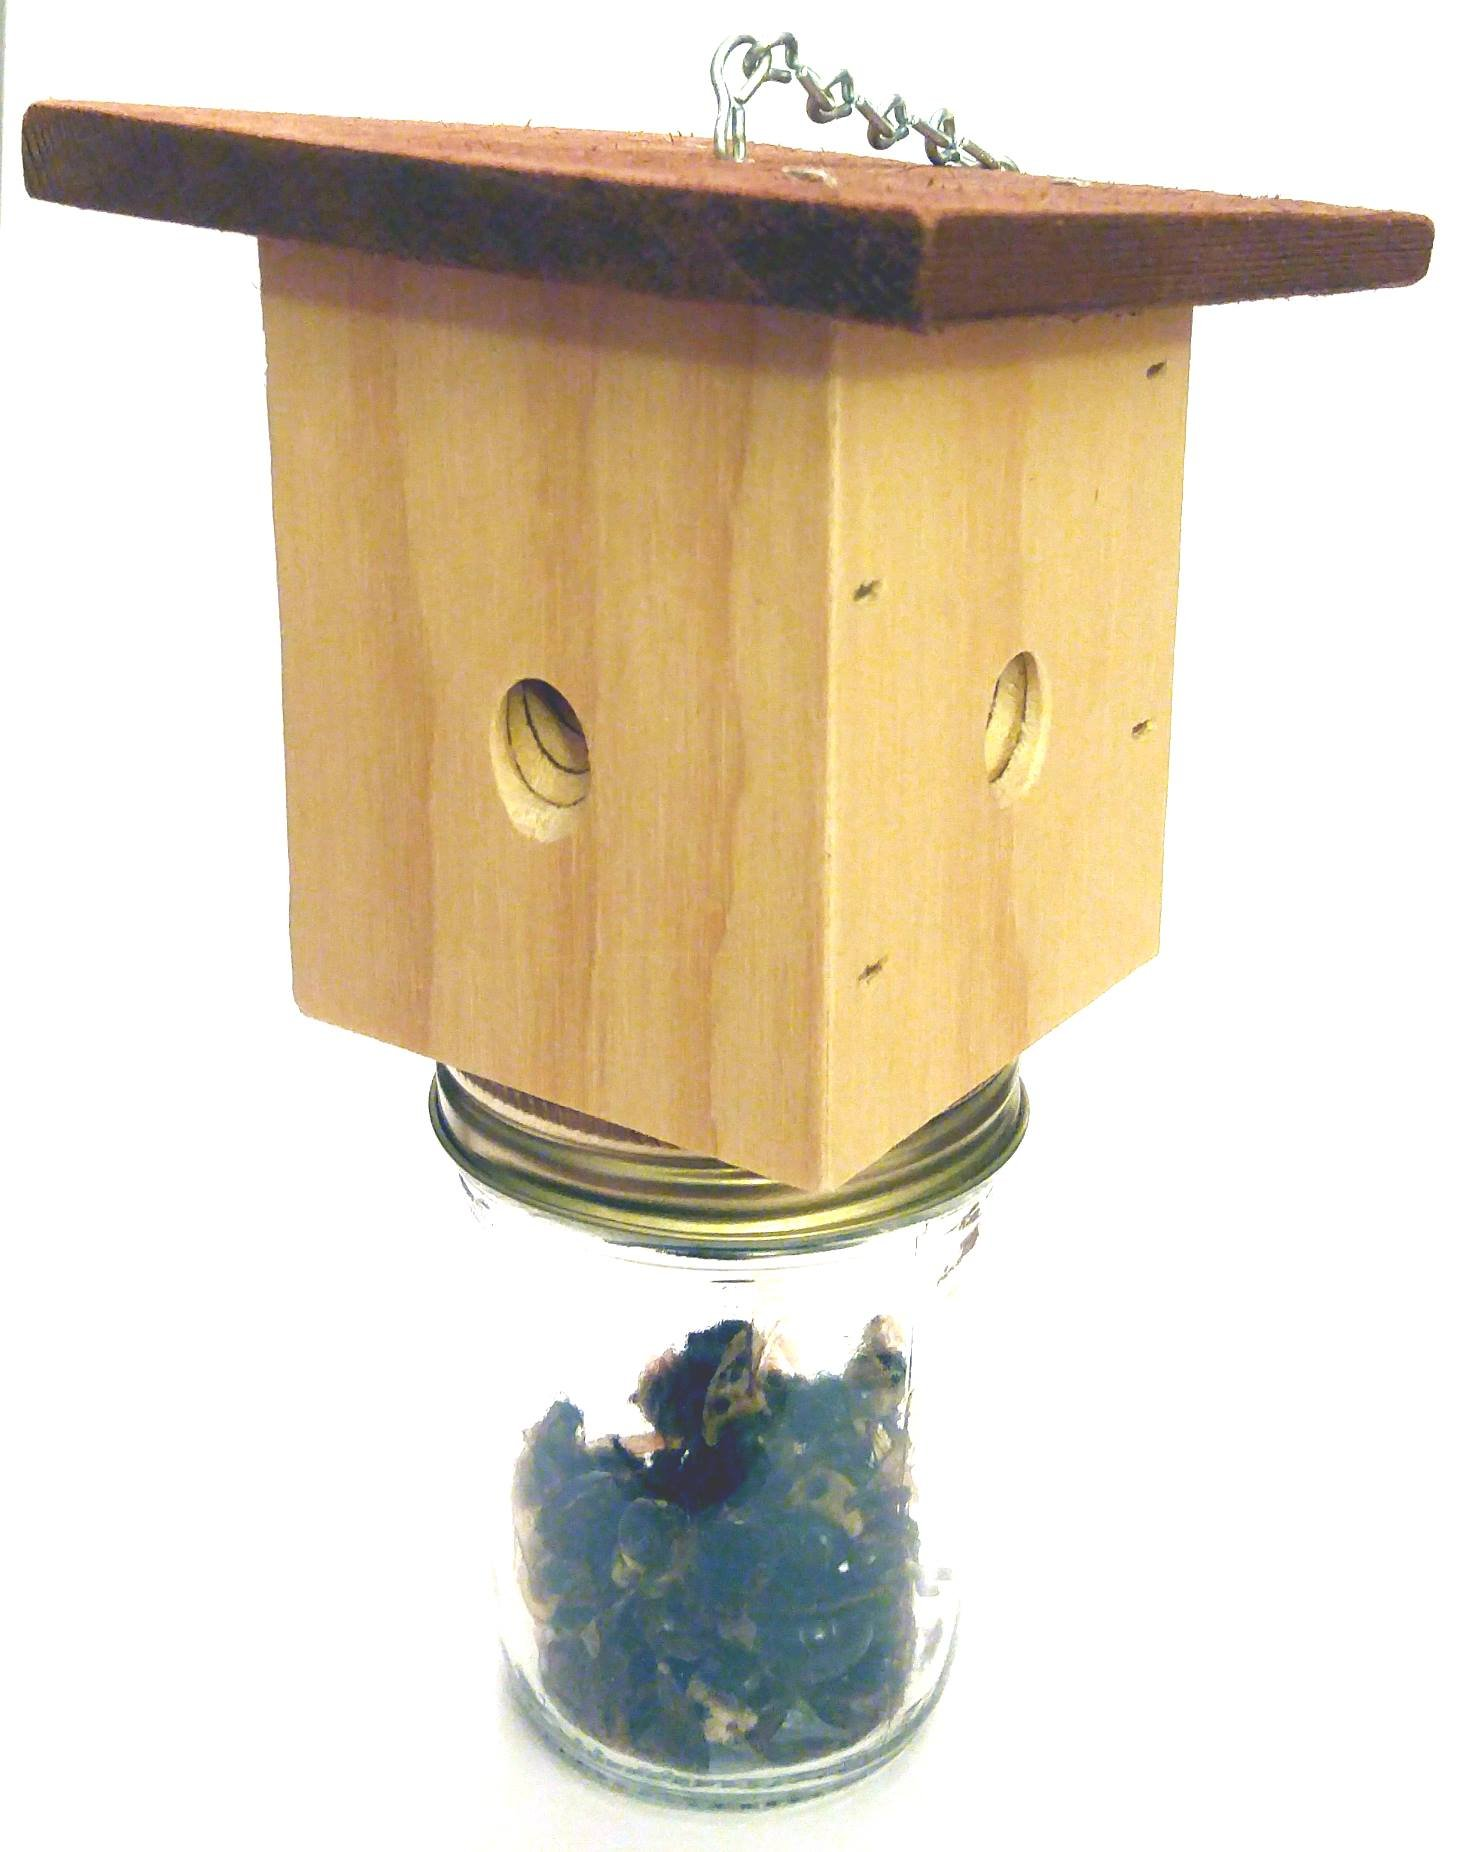 Donaldson Farms - Carpenter Bee Trap - Effective for Catching Those Pesky Carpenter Bees!